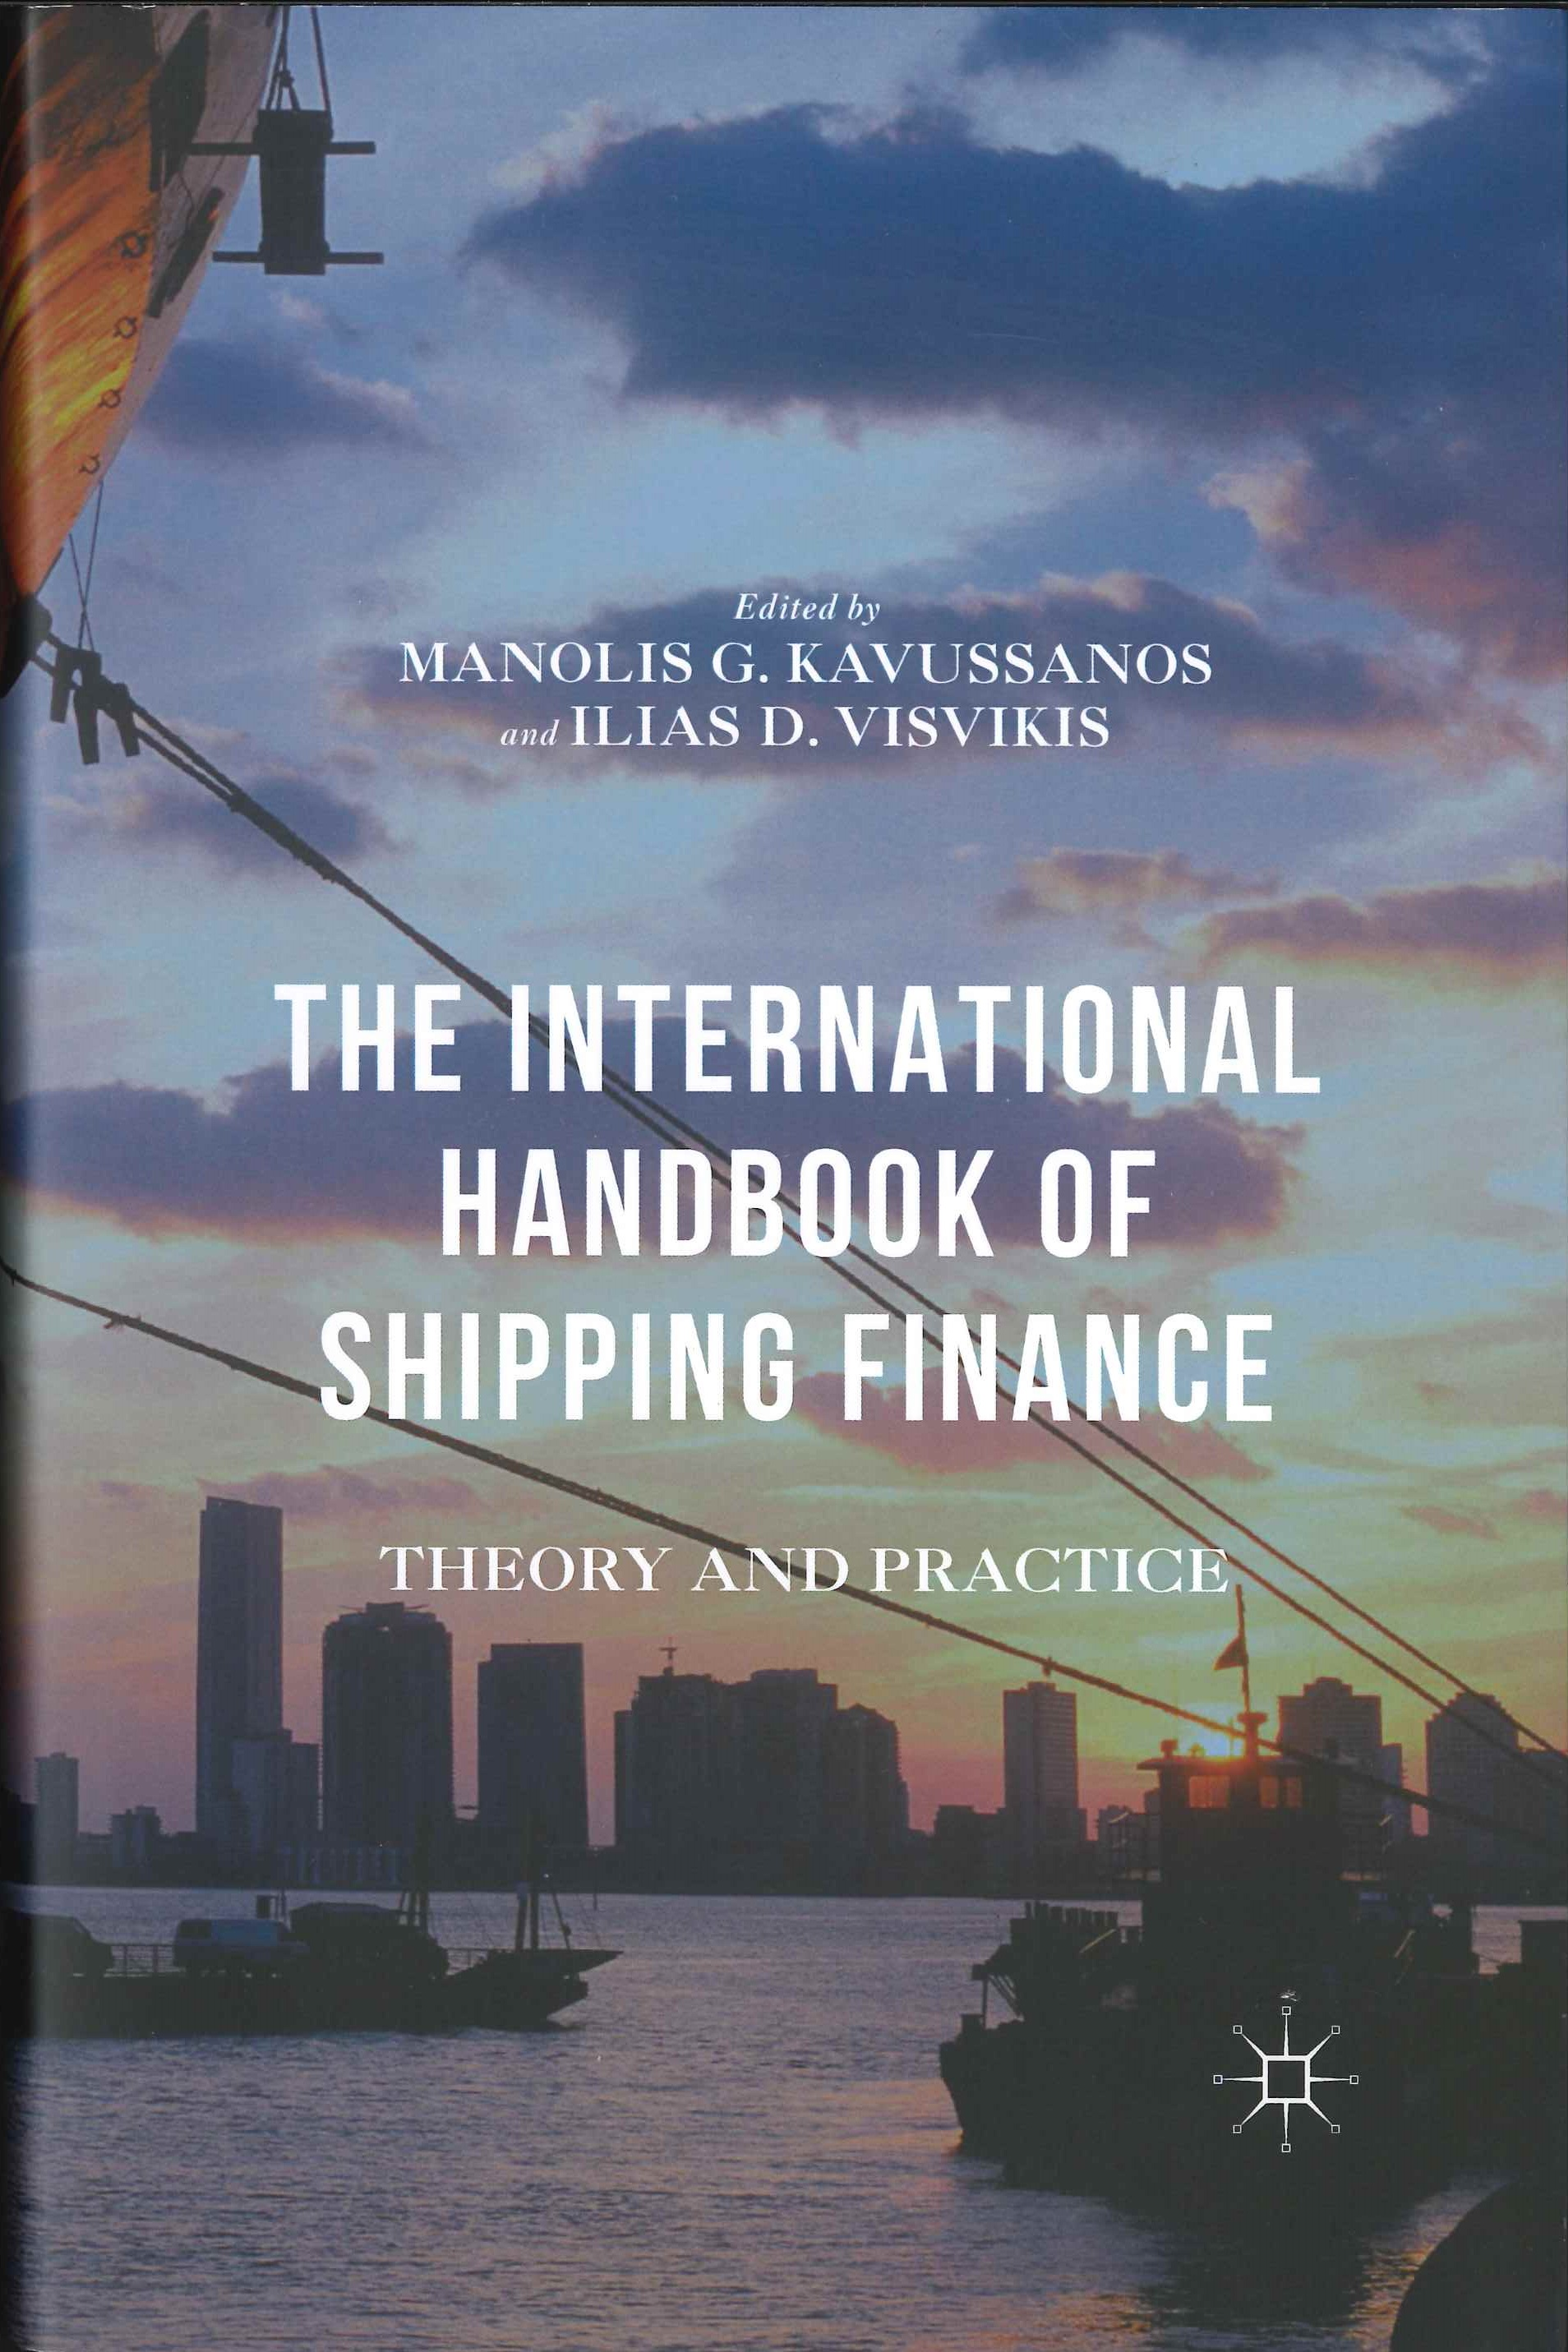 The international handbook of shipping finance:theory and practice